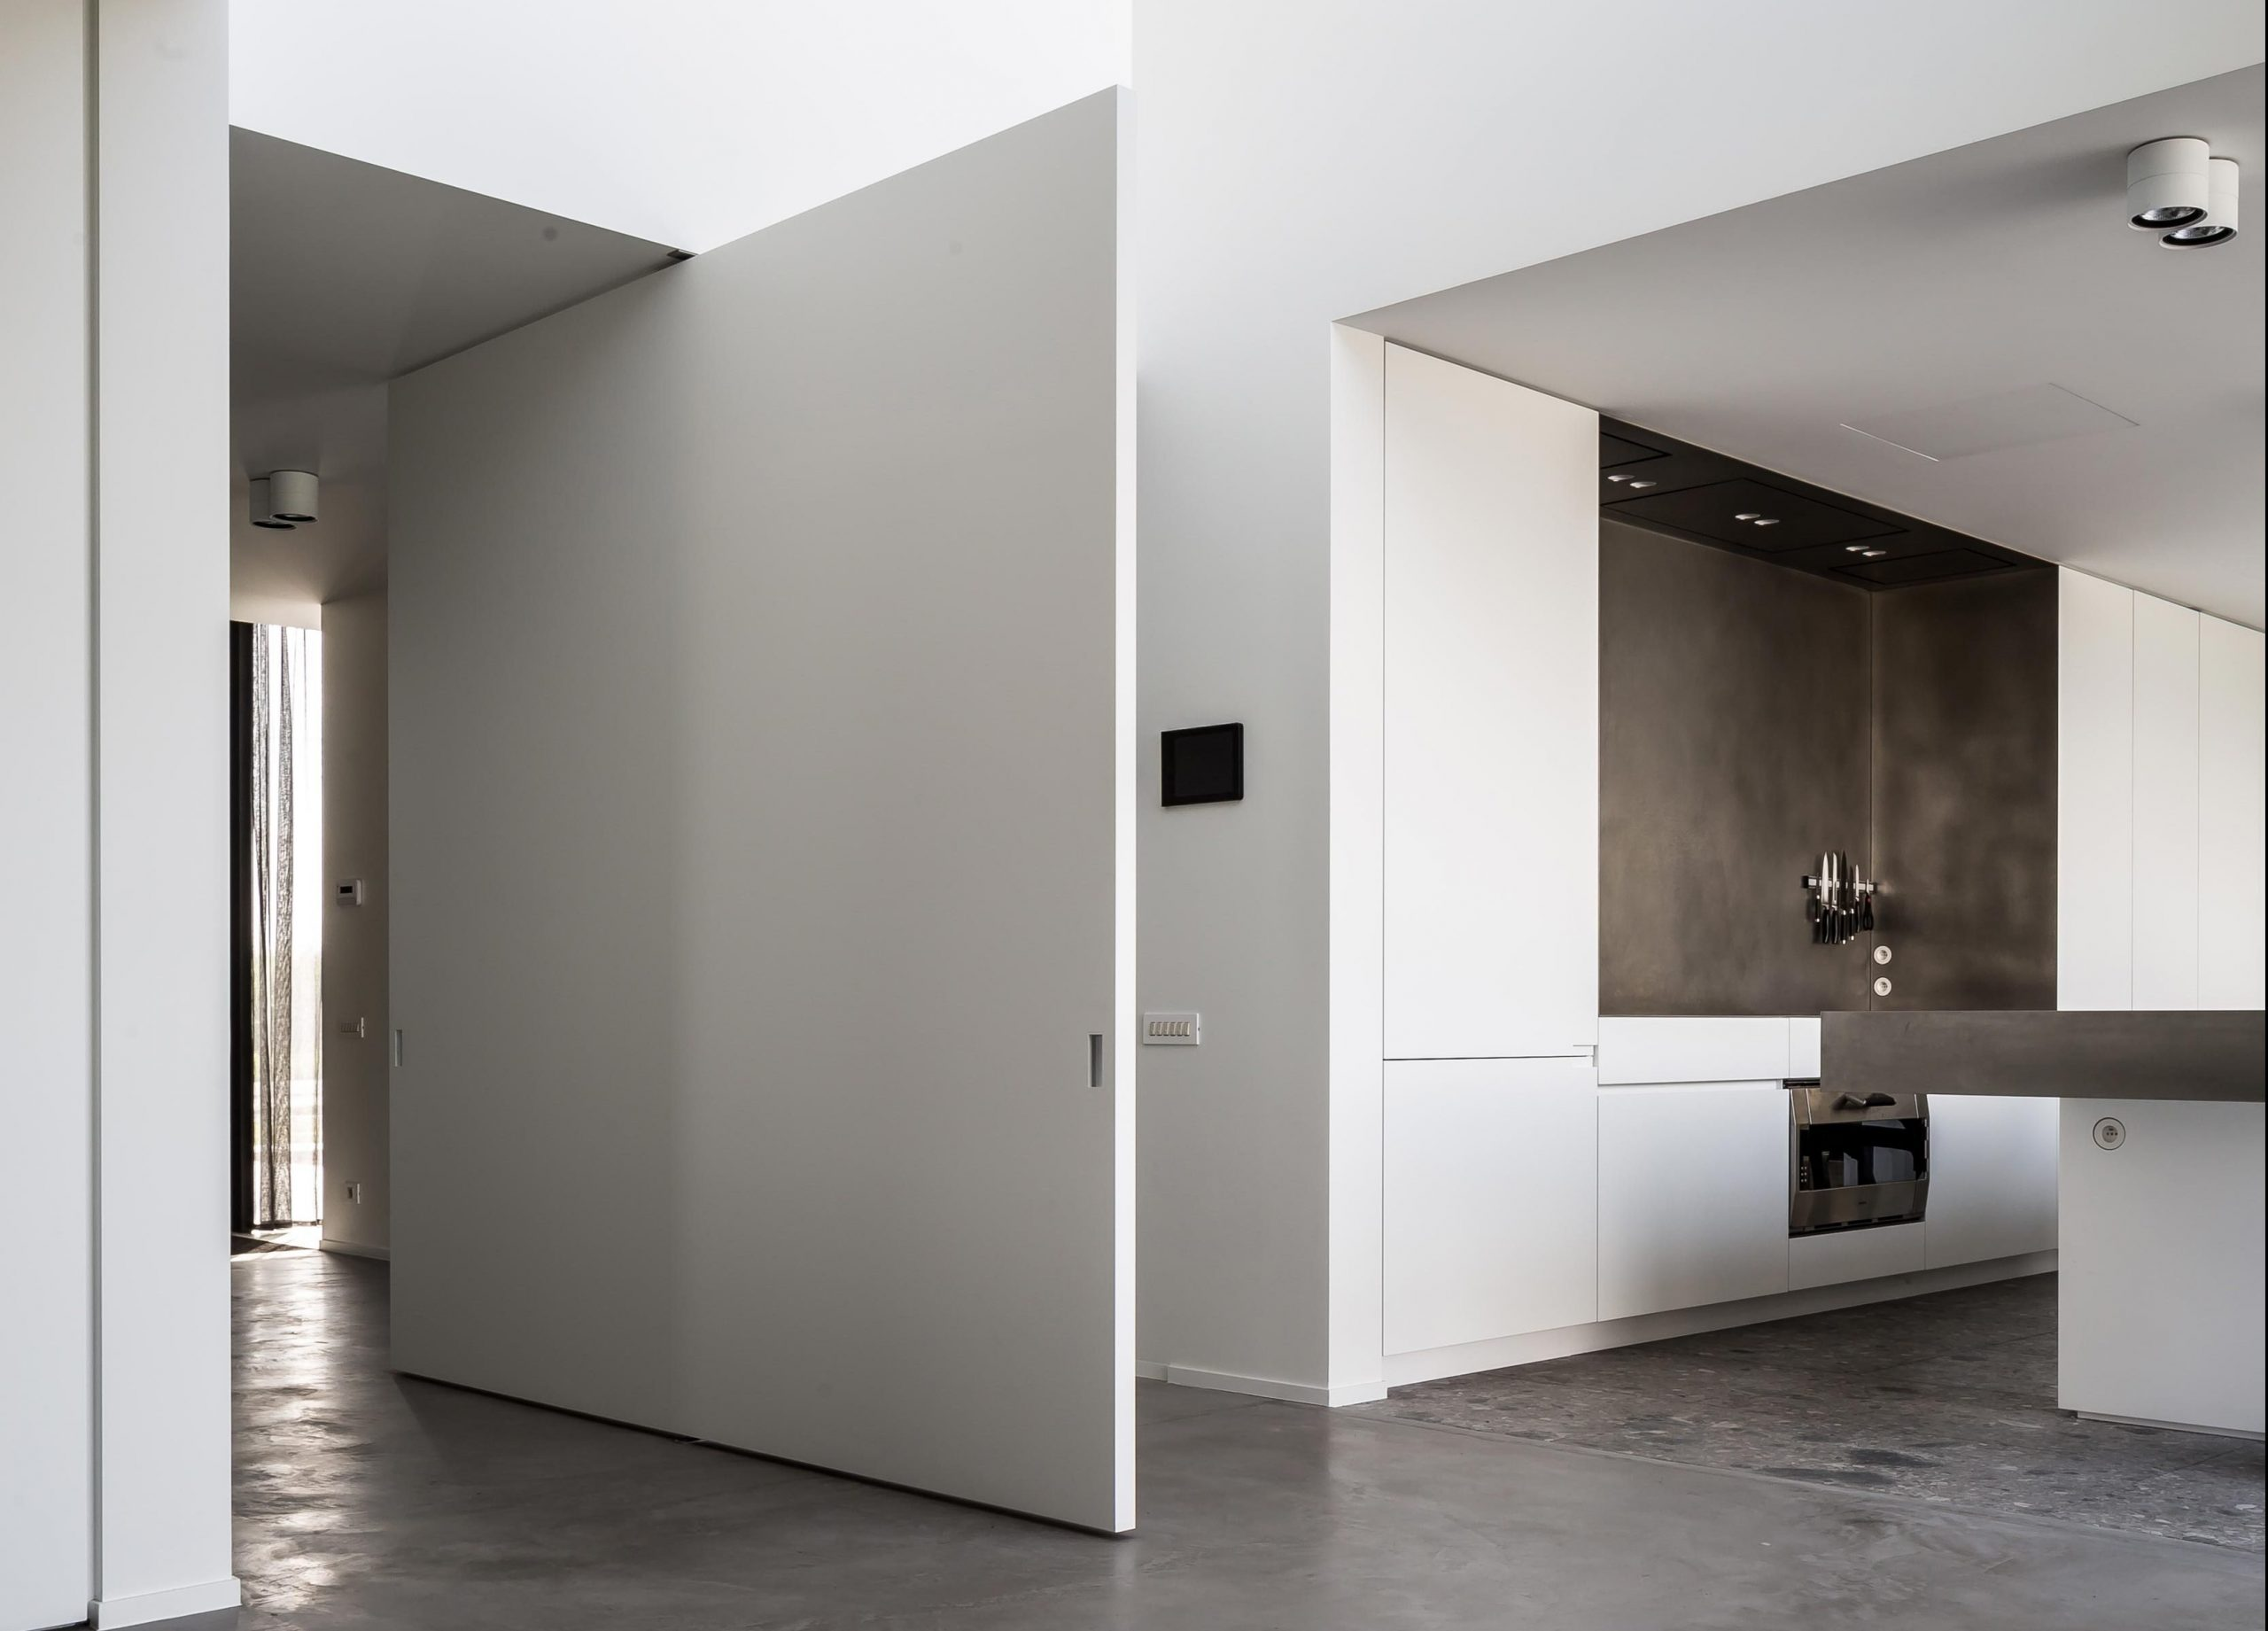 pivoting-oversized-door-in-white-with-middle-placement-e1574332095498-scaled.jpg